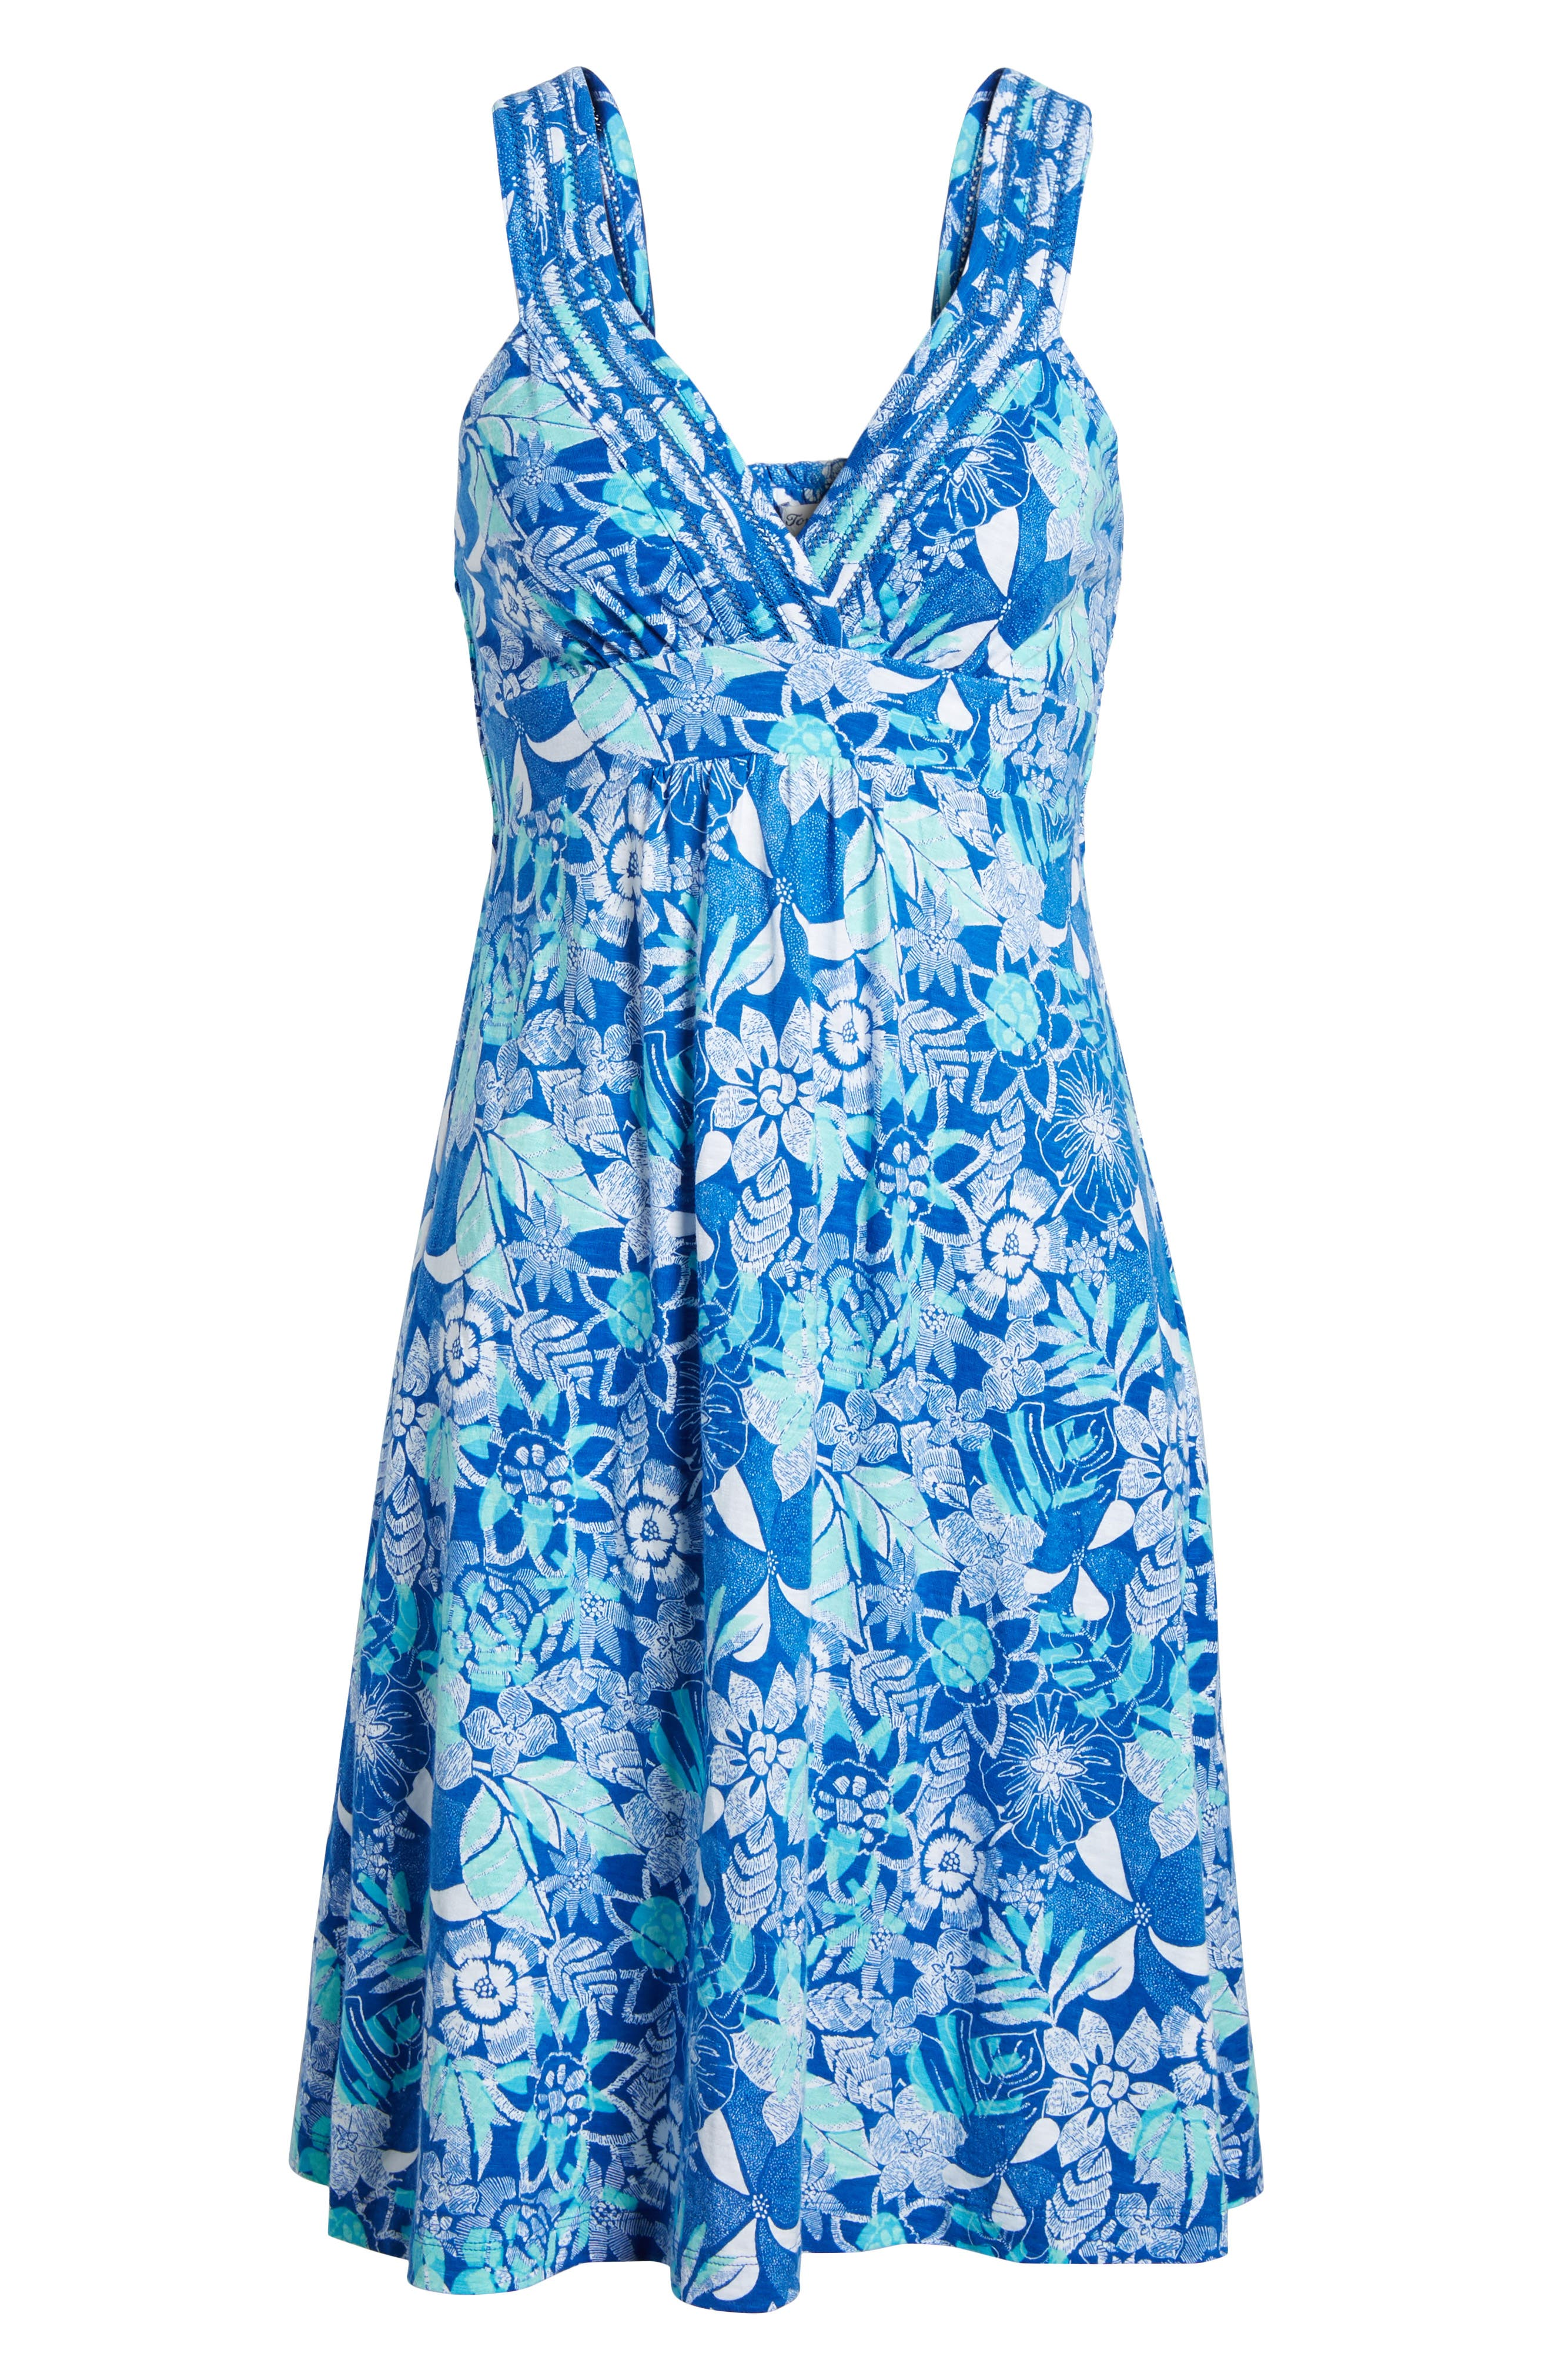 Boardwalk Blooms A-Line Dress,                             Alternate thumbnail 6, color,                             COBALT